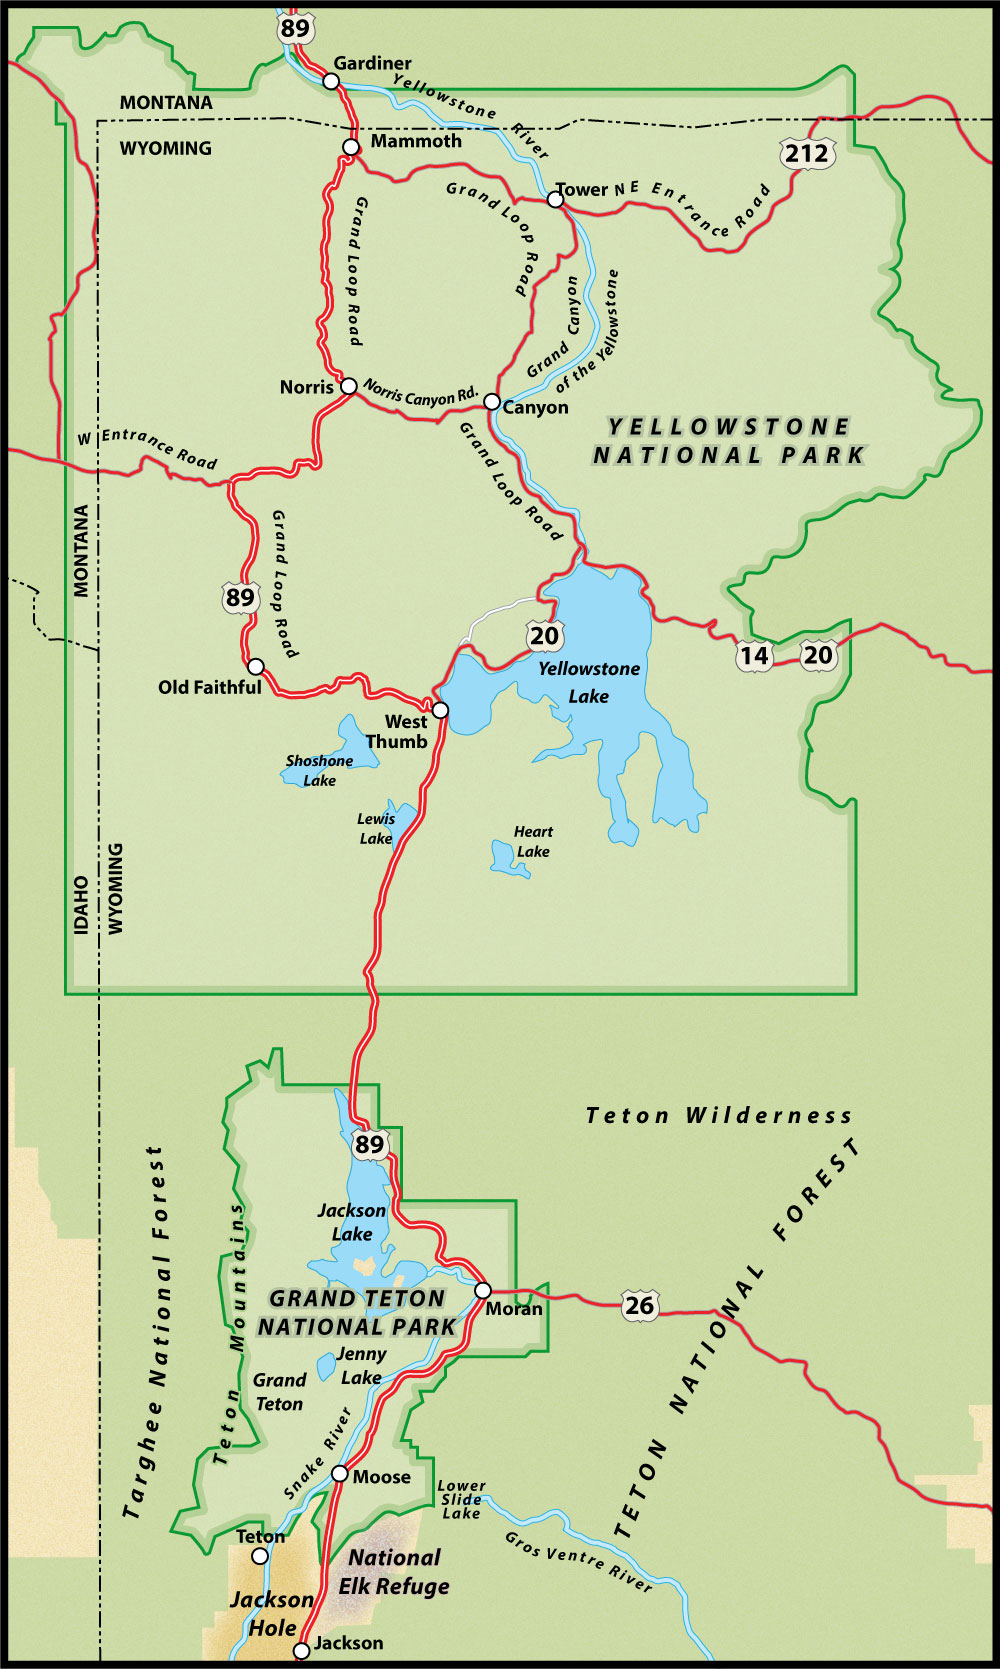 Jackson to Gardiner | US Route 89 on yellowstone elevation changes, rocky mountains, yellowstone park elevation, land elevation maps, texas elevation maps, sea level elevation maps, old faithful geyser, utah elevation maps, devils tower national monument, rocky mountain national park, wyoming elevation maps, yellowstone lake, mesa verde national park, yellowstone distance maps, great smoky mountains national park, idaho elevation maps, yosemite national park, alaska elevation maps, glacier national park, missouri elevation maps, grand teton national park, portland elevation maps, west yellowstone snowmobiling maps, sequoia national park, statue of liberty, grand canyon national park, grand prismatic spring, new orleans elevation maps, montana elevation maps, florida elevation maps, lake elevation maps, rocky mountain elevation maps, colorado elevation maps, everglades national park, washington elevation maps,